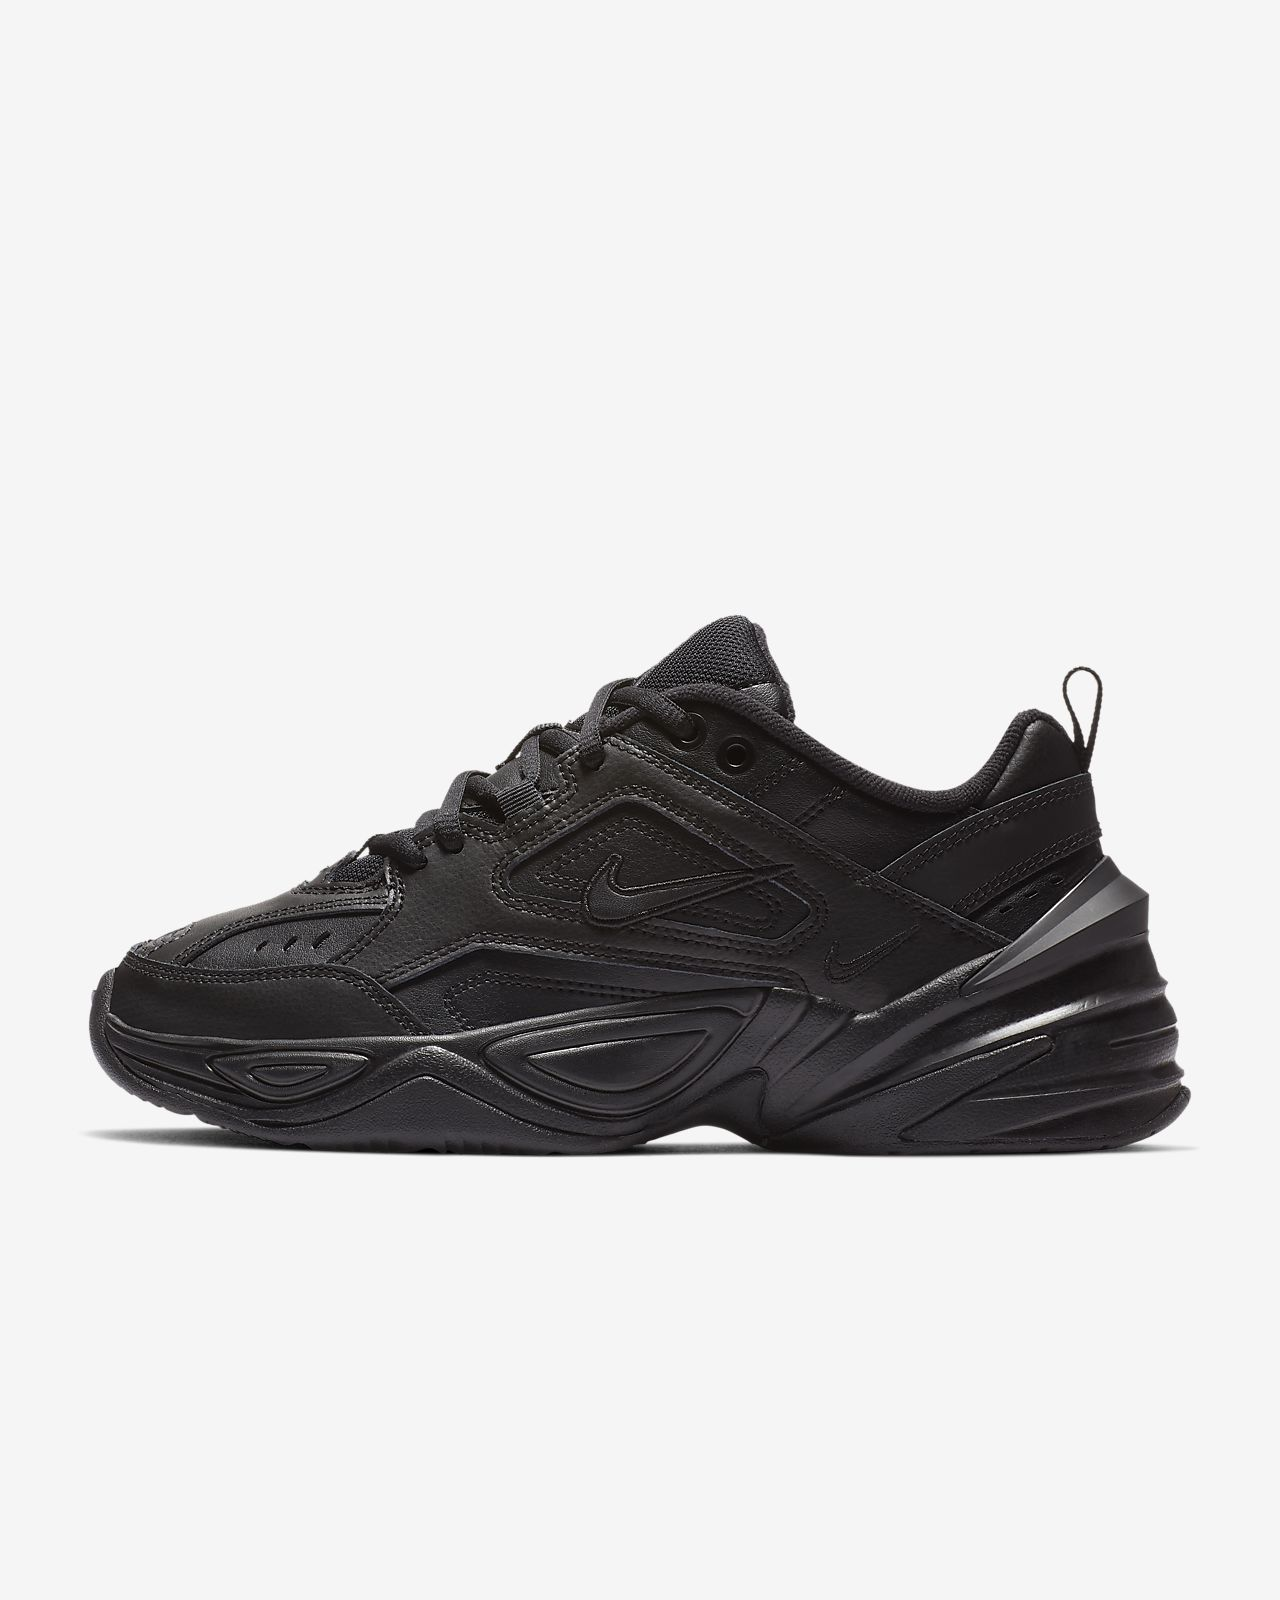 online store ad998 3fbf2 ... Chaussure Nike M2K Tekno pour Femme